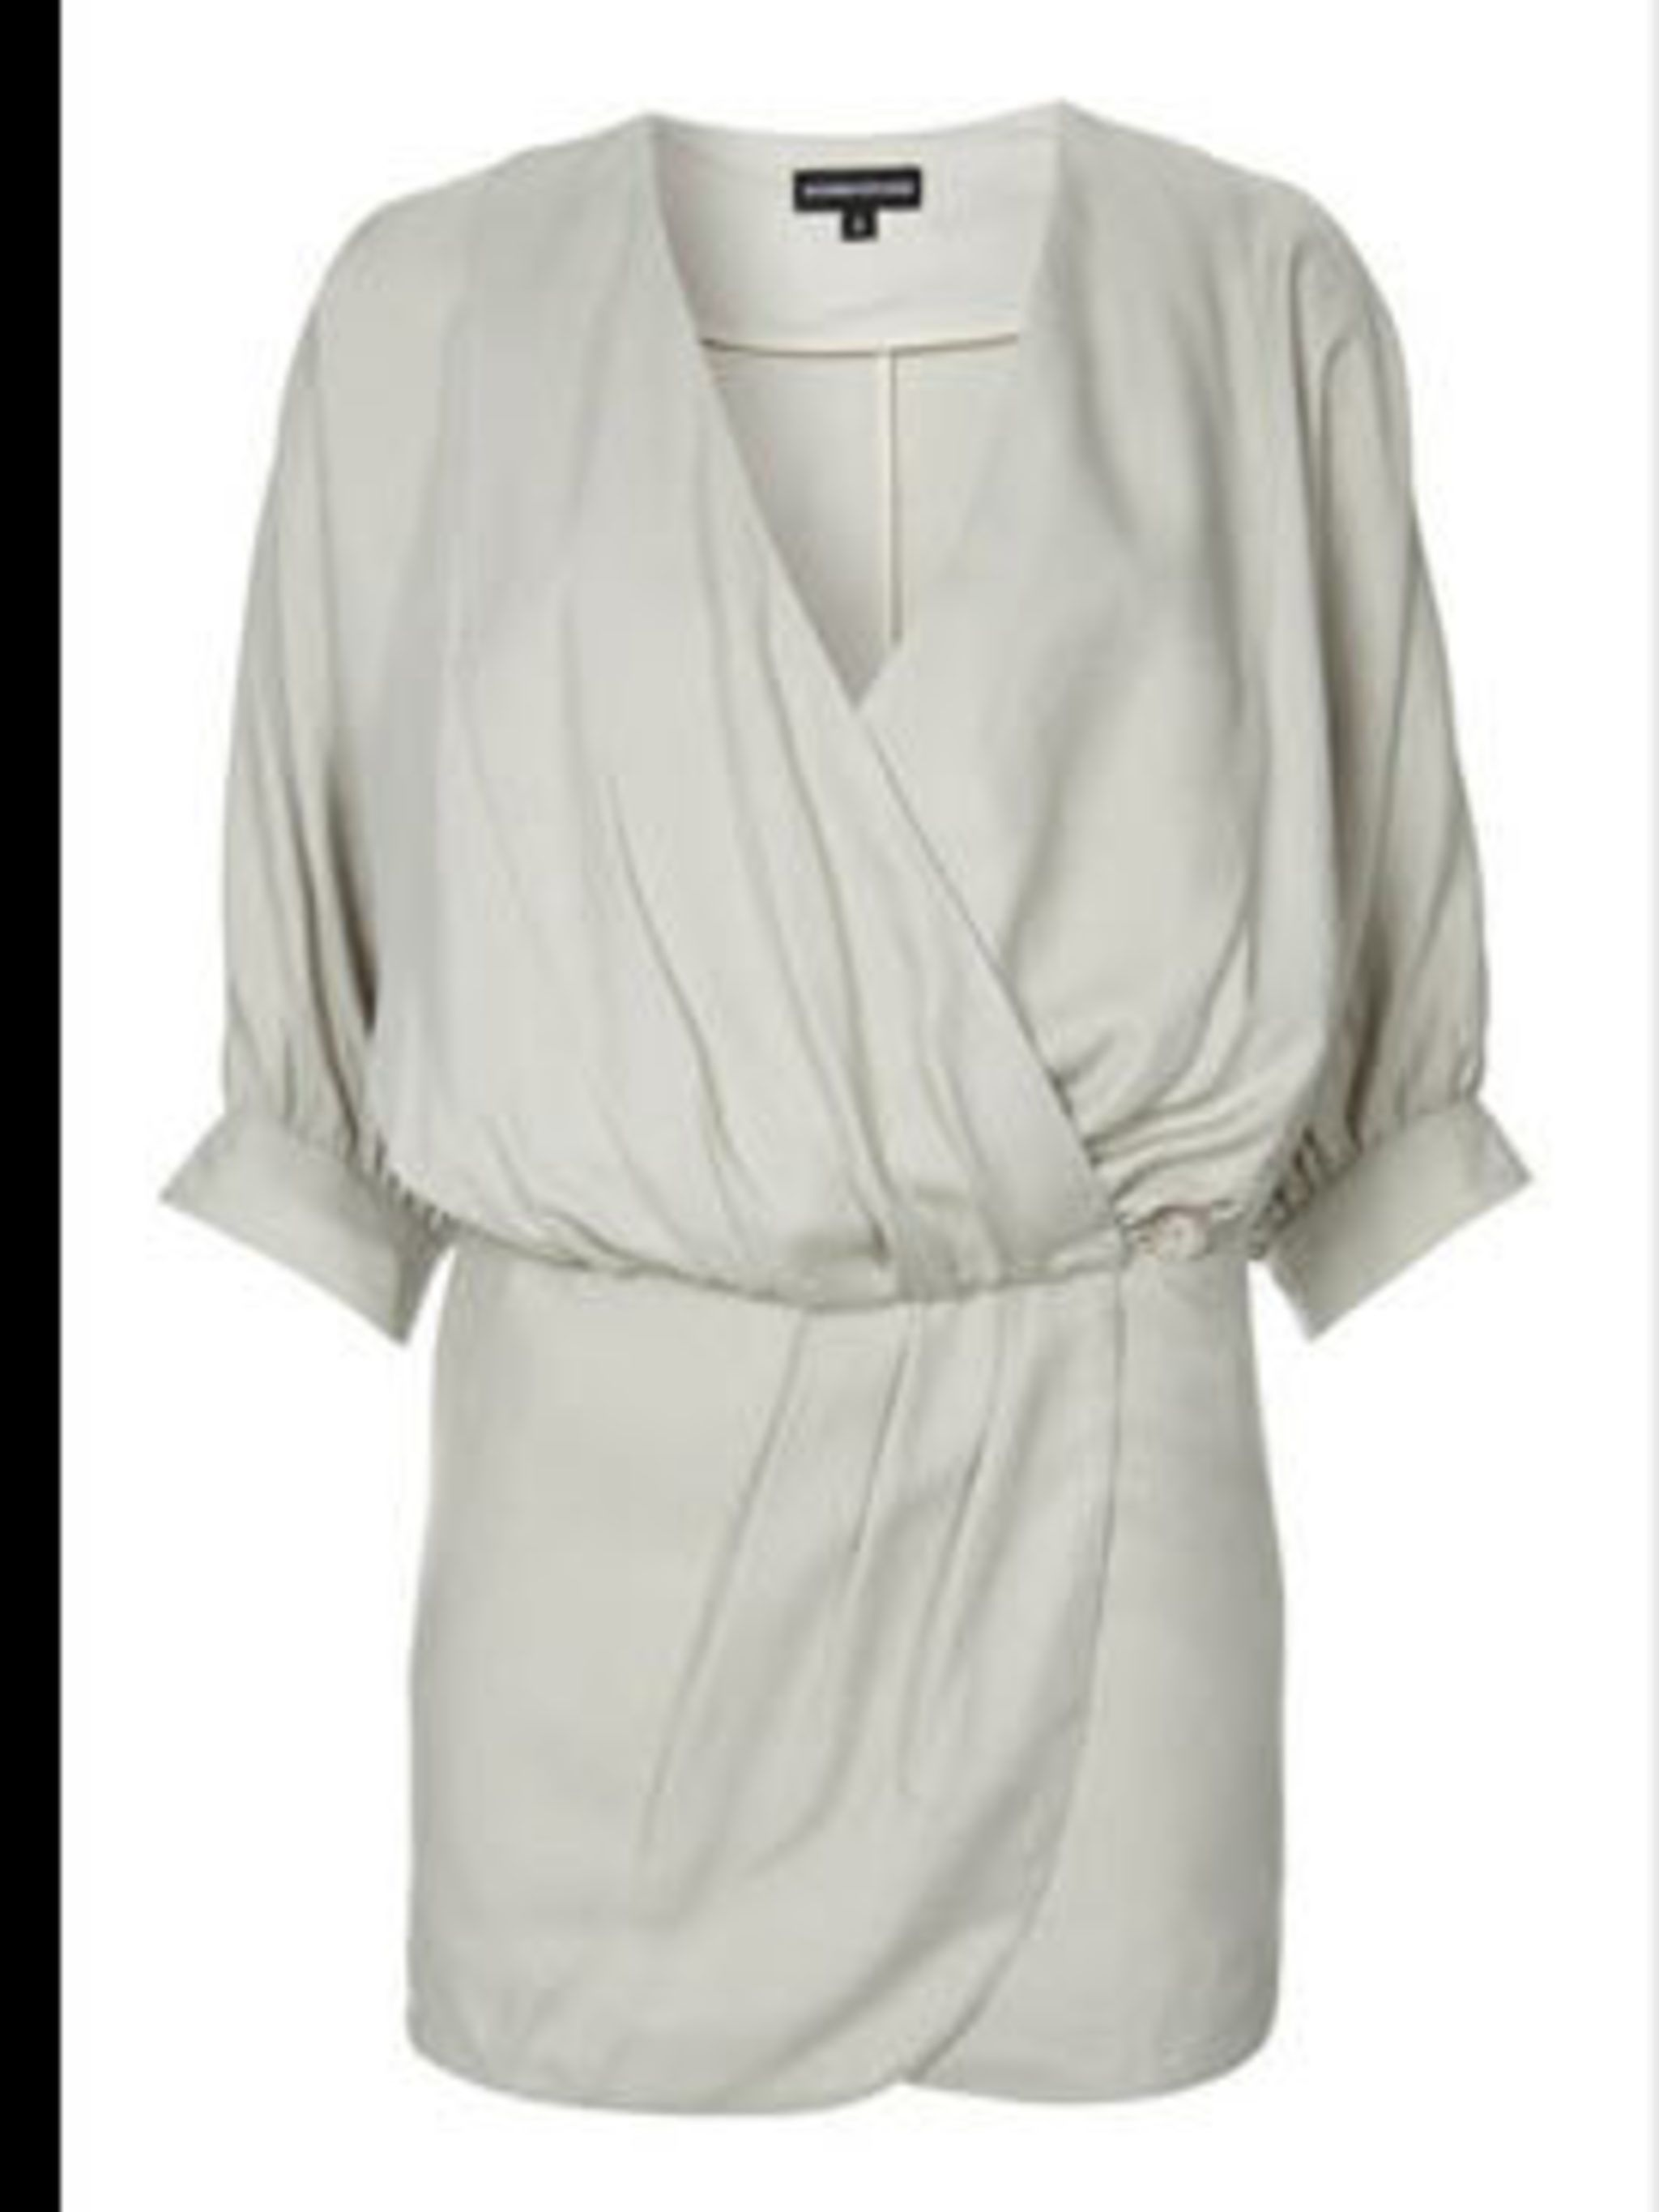 "<p>Dress, £55 by <a href=""http://www.warehouse.co.uk/fcp/product/fashion//BLOUSON-WRAP-DRESS/12219"">Warehouse</a></p>"